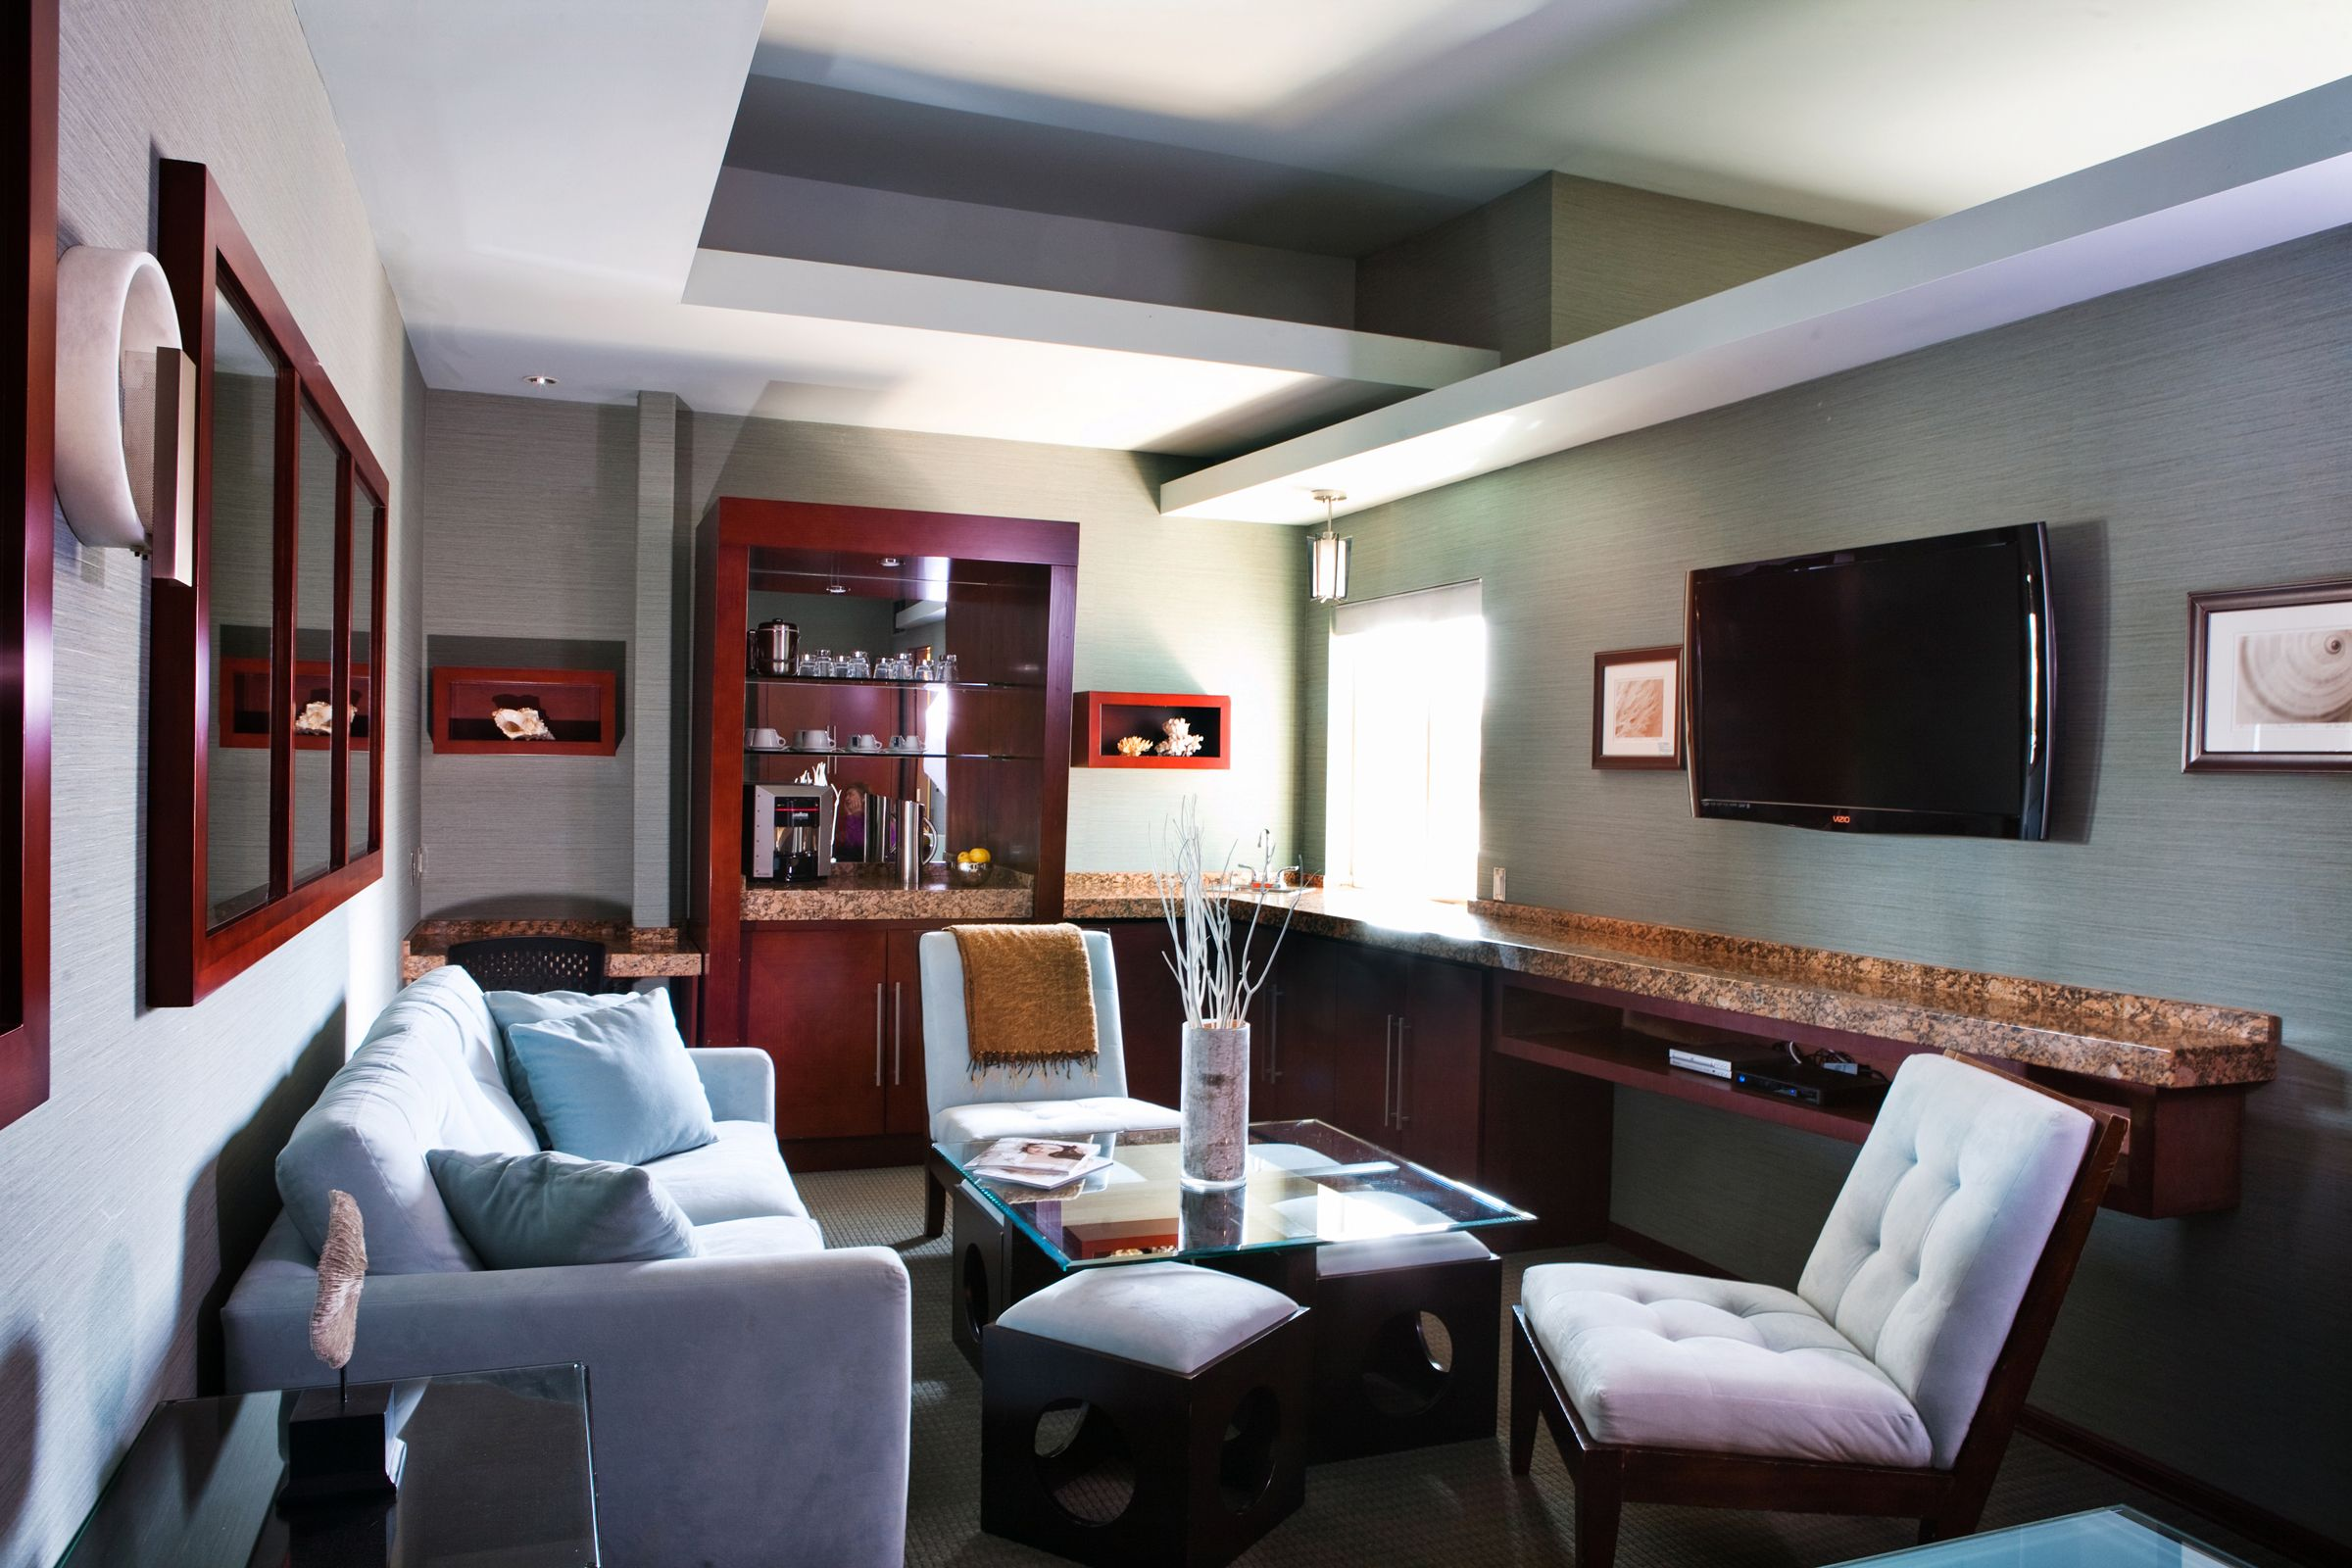 Cond 233 nast traveler 2013 hot list of top new hotels worldwide - Luxury Hotel Rooms Pictures Shade Hotel A Luxury Boutique Hotel In Manhattan Beach Ca Luxury Hotel Rooms Pinterest Room Pictures Manhattan And Spa